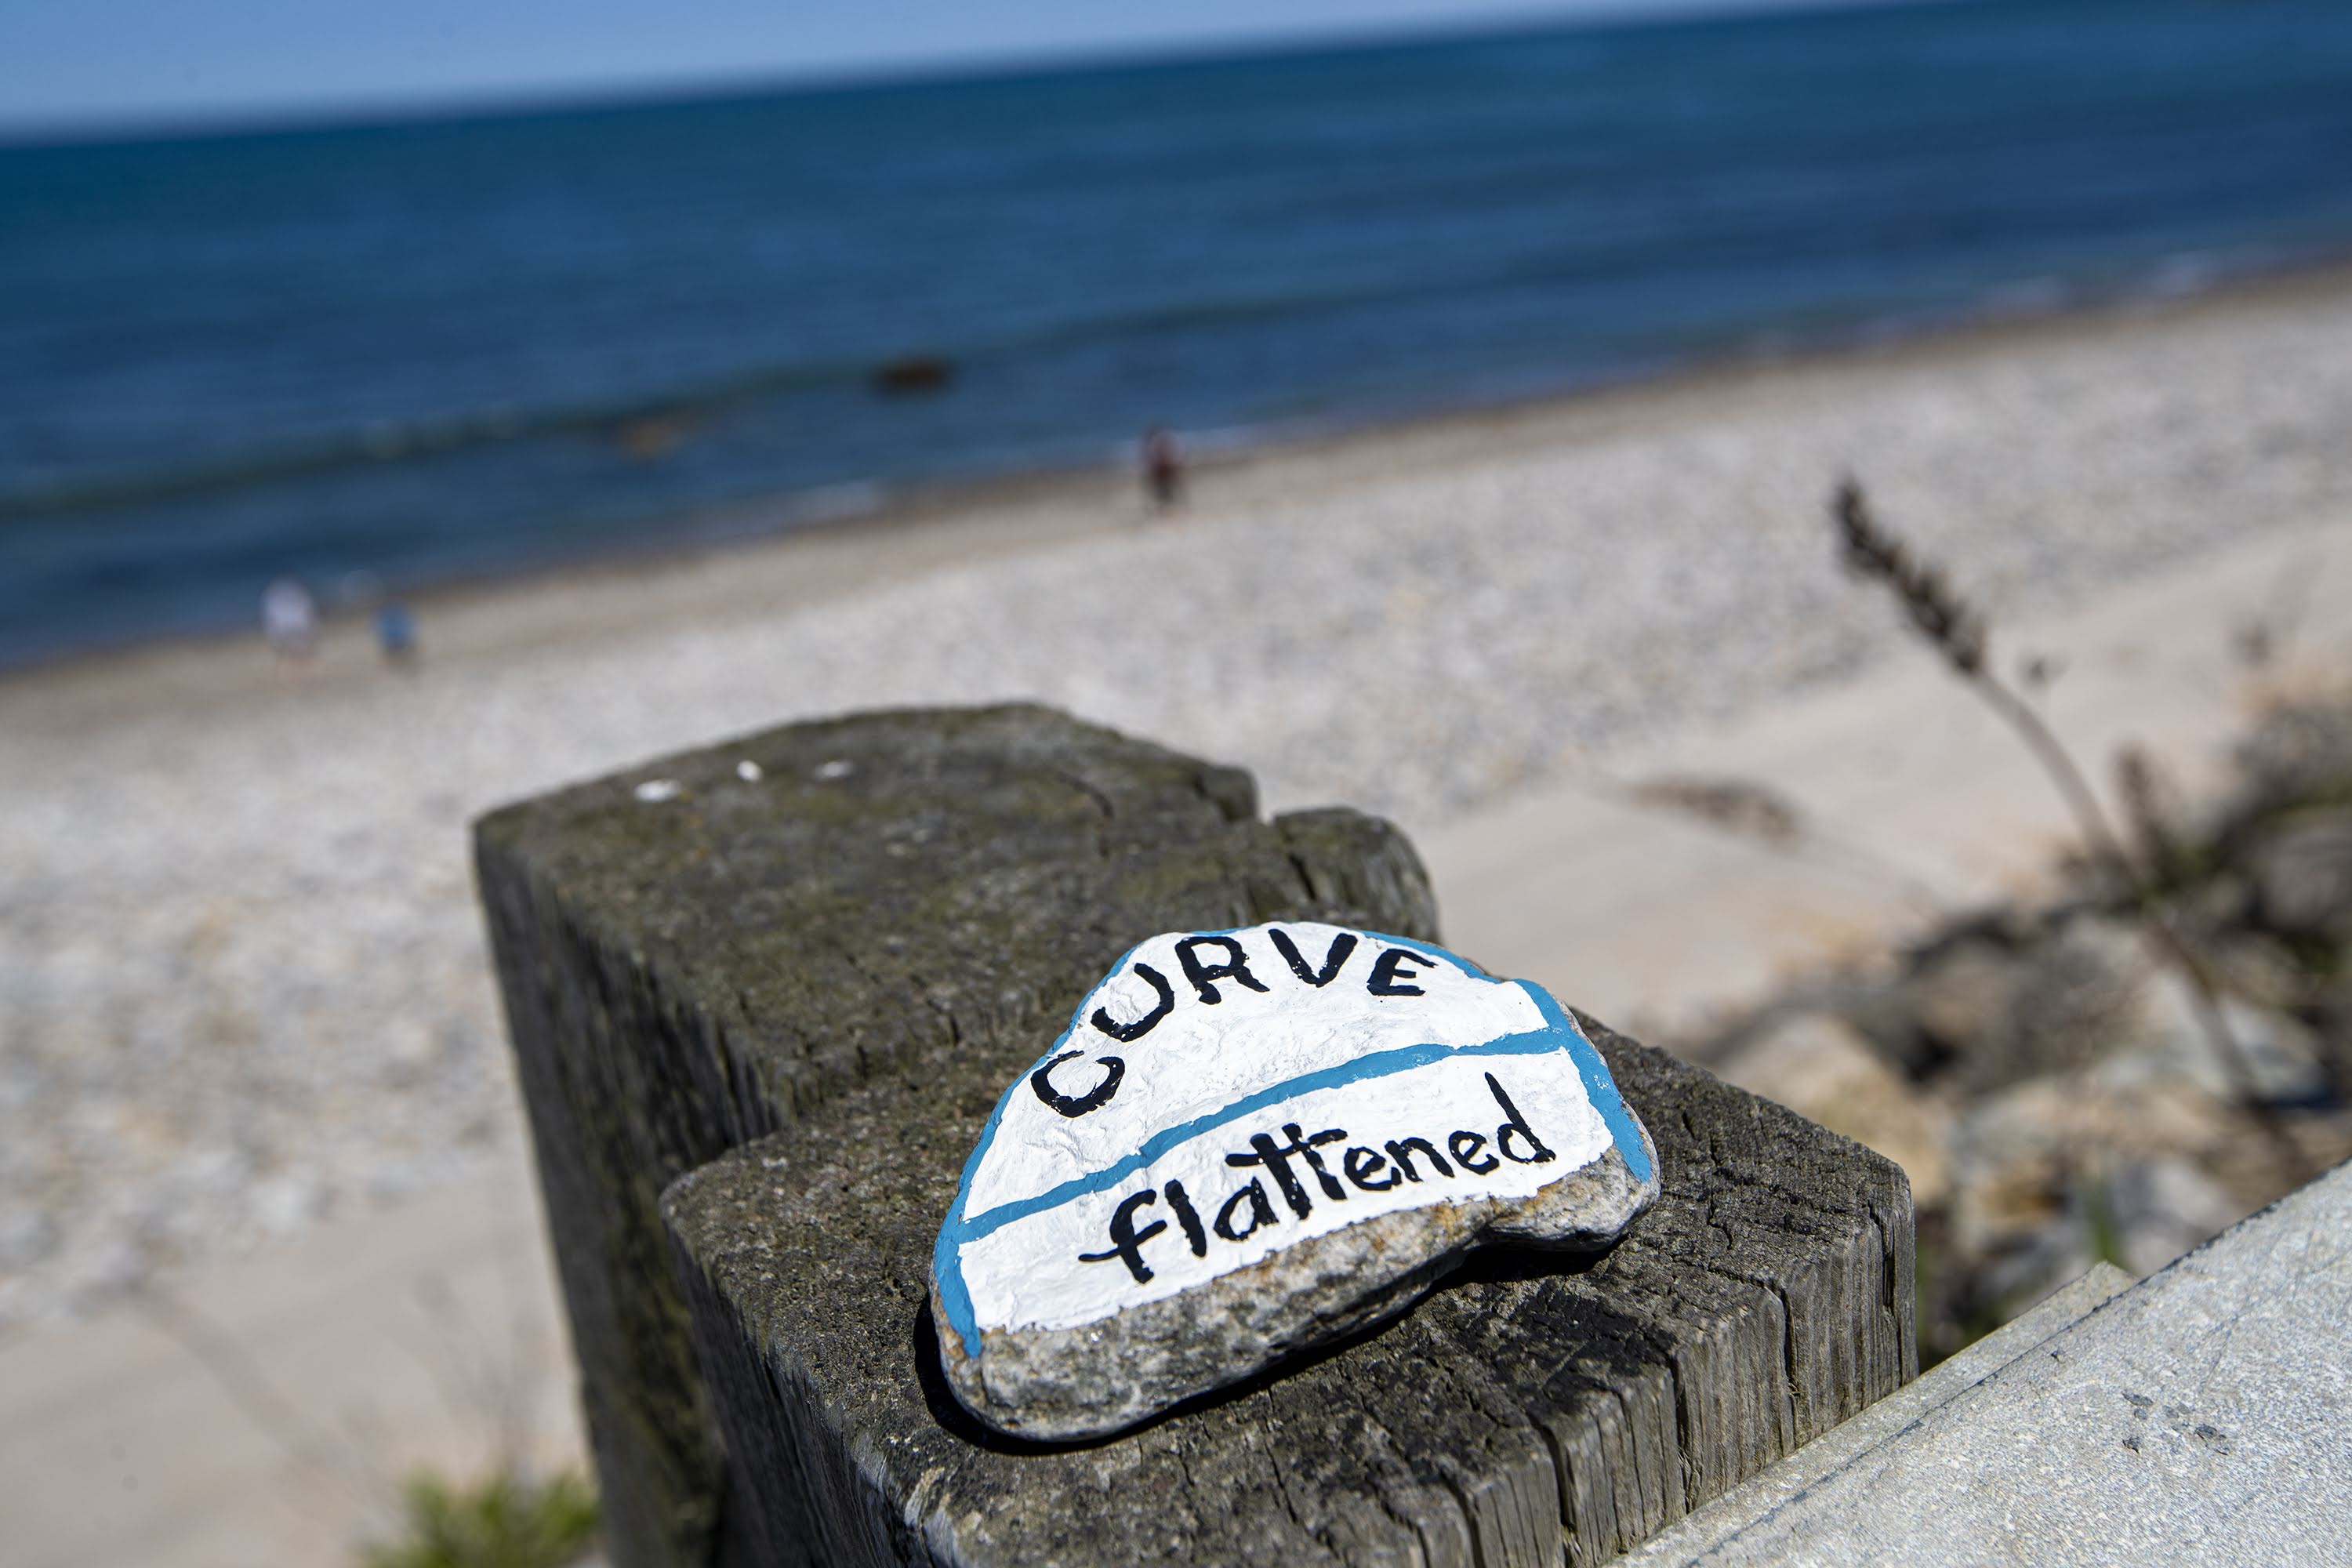 Brightly painted rocks with messages inscribed on them in response to the pandemic are left on top of the guardrails at a virtually empty Brant Rock Beach in Marshfield. (Jesse Costa/WBUR)